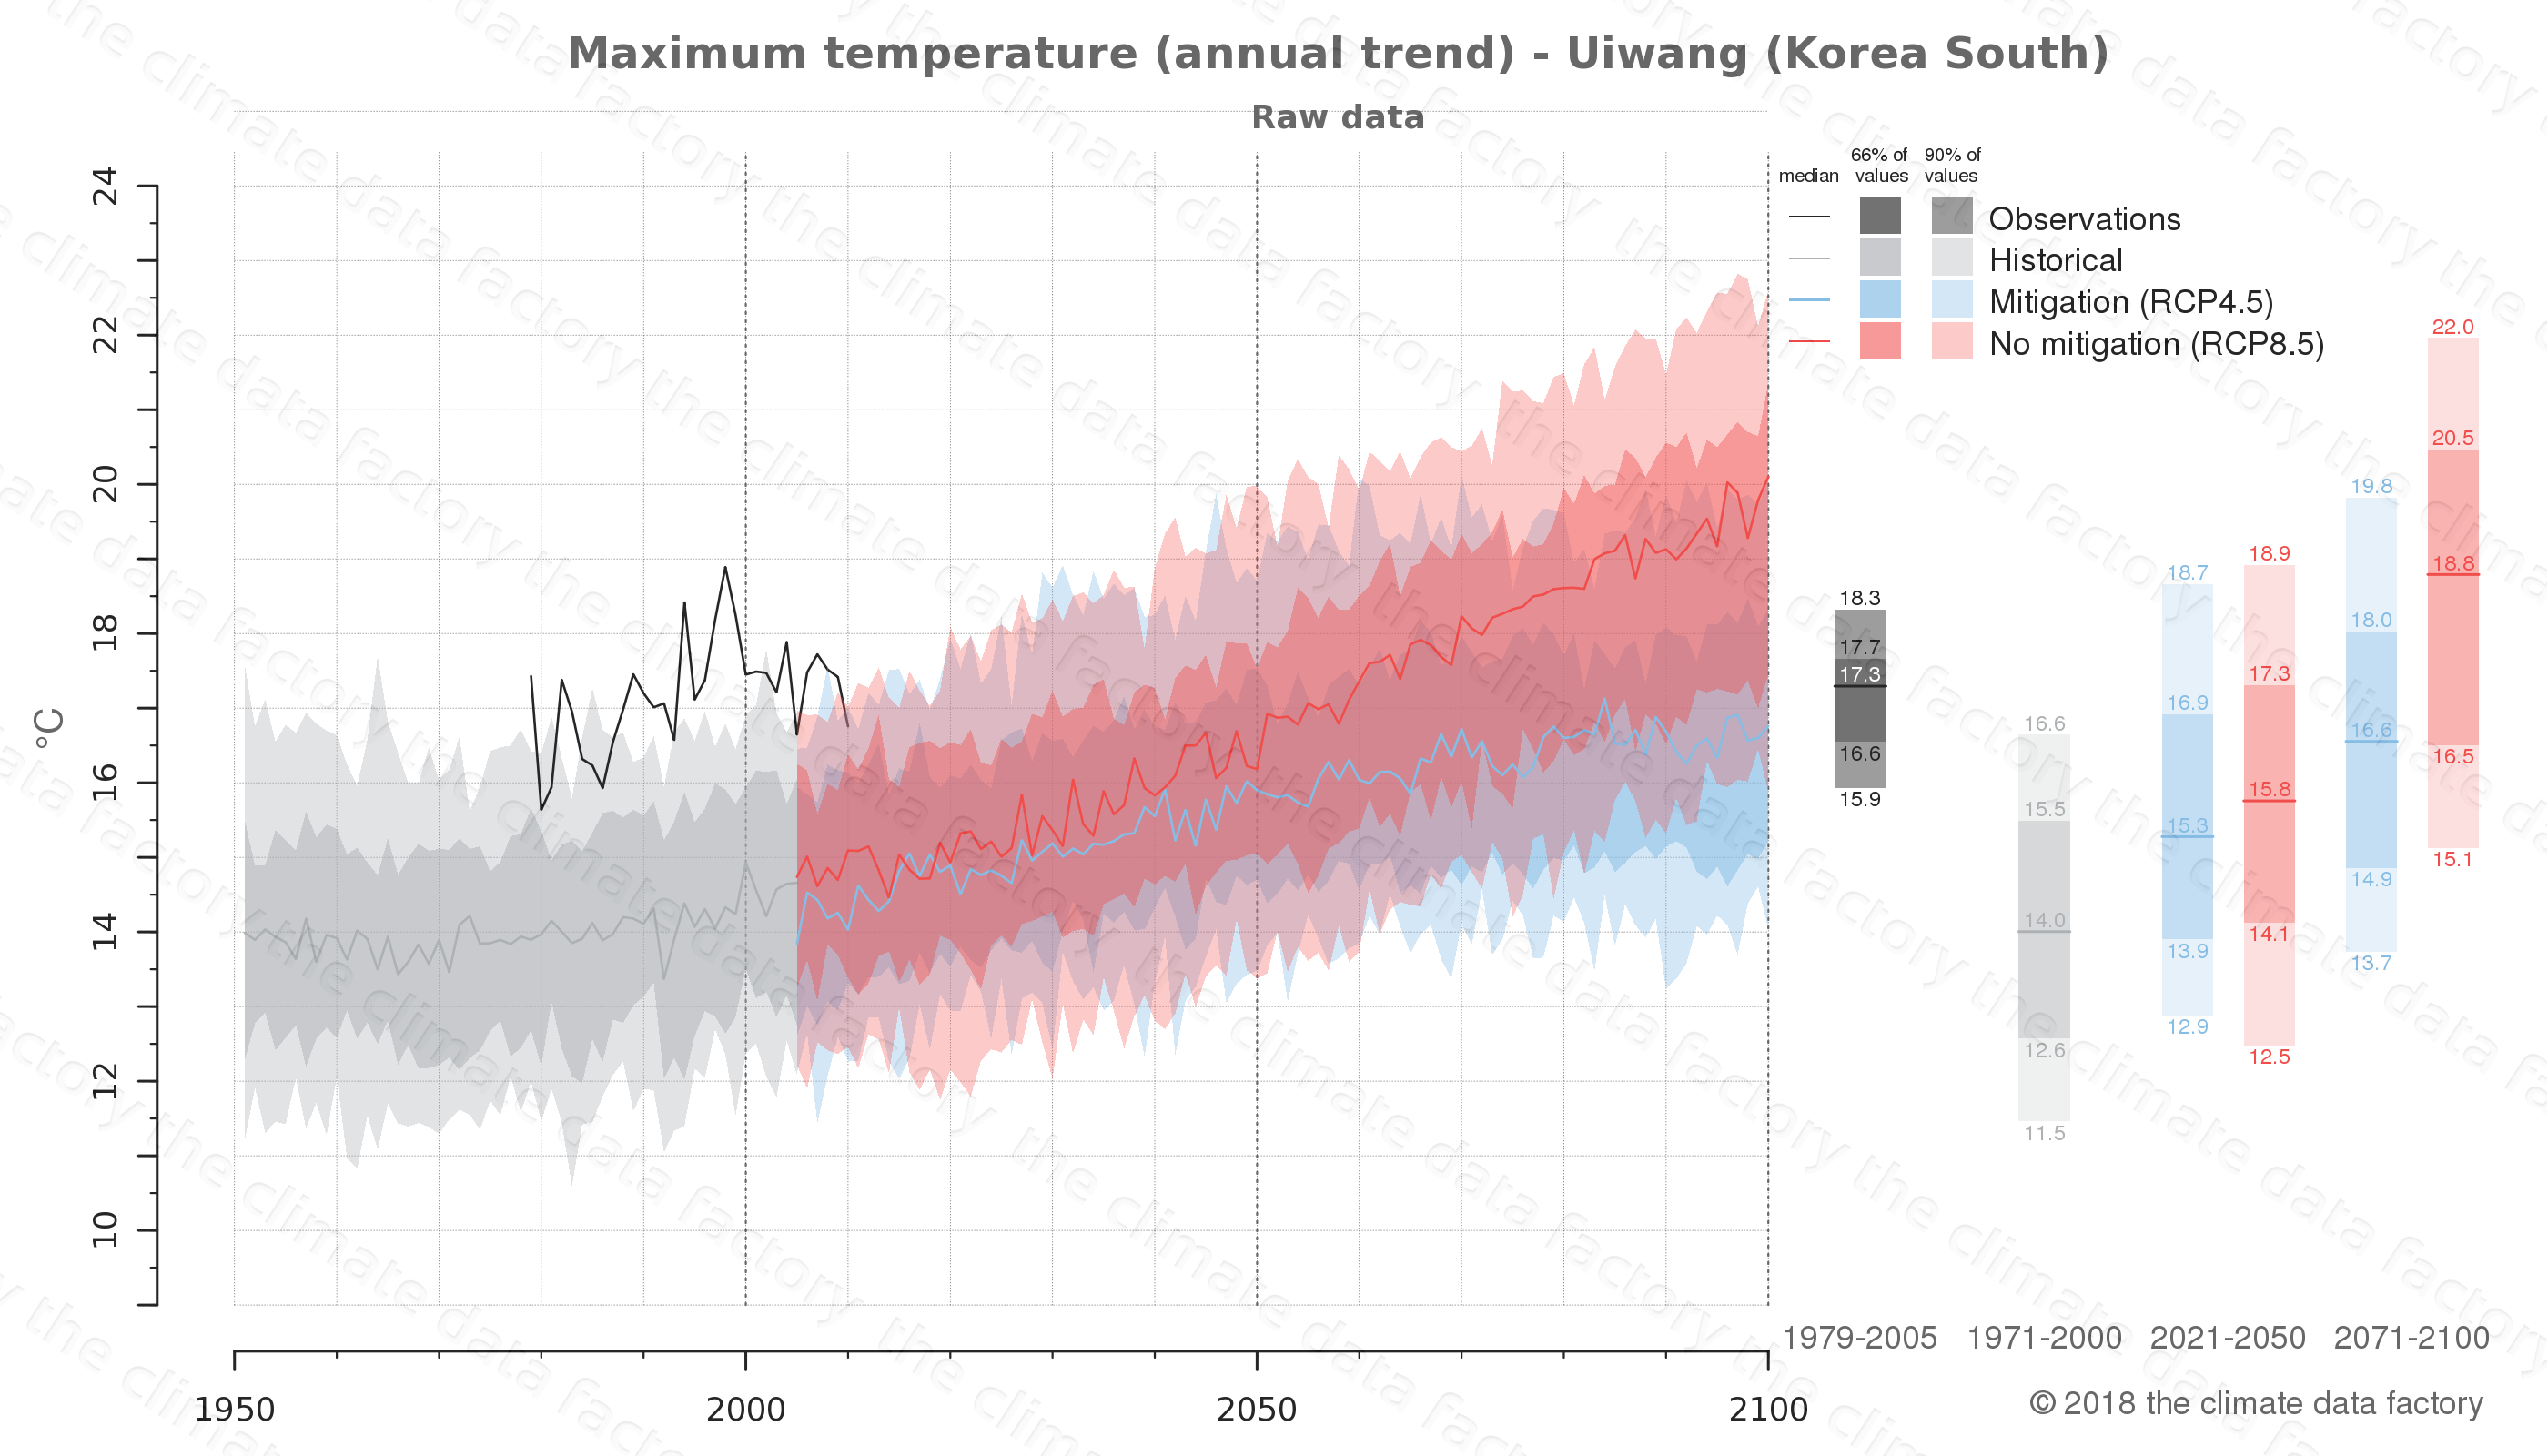 climate change data policy adaptation climate graph city data maximum-temperature uiwang south korea